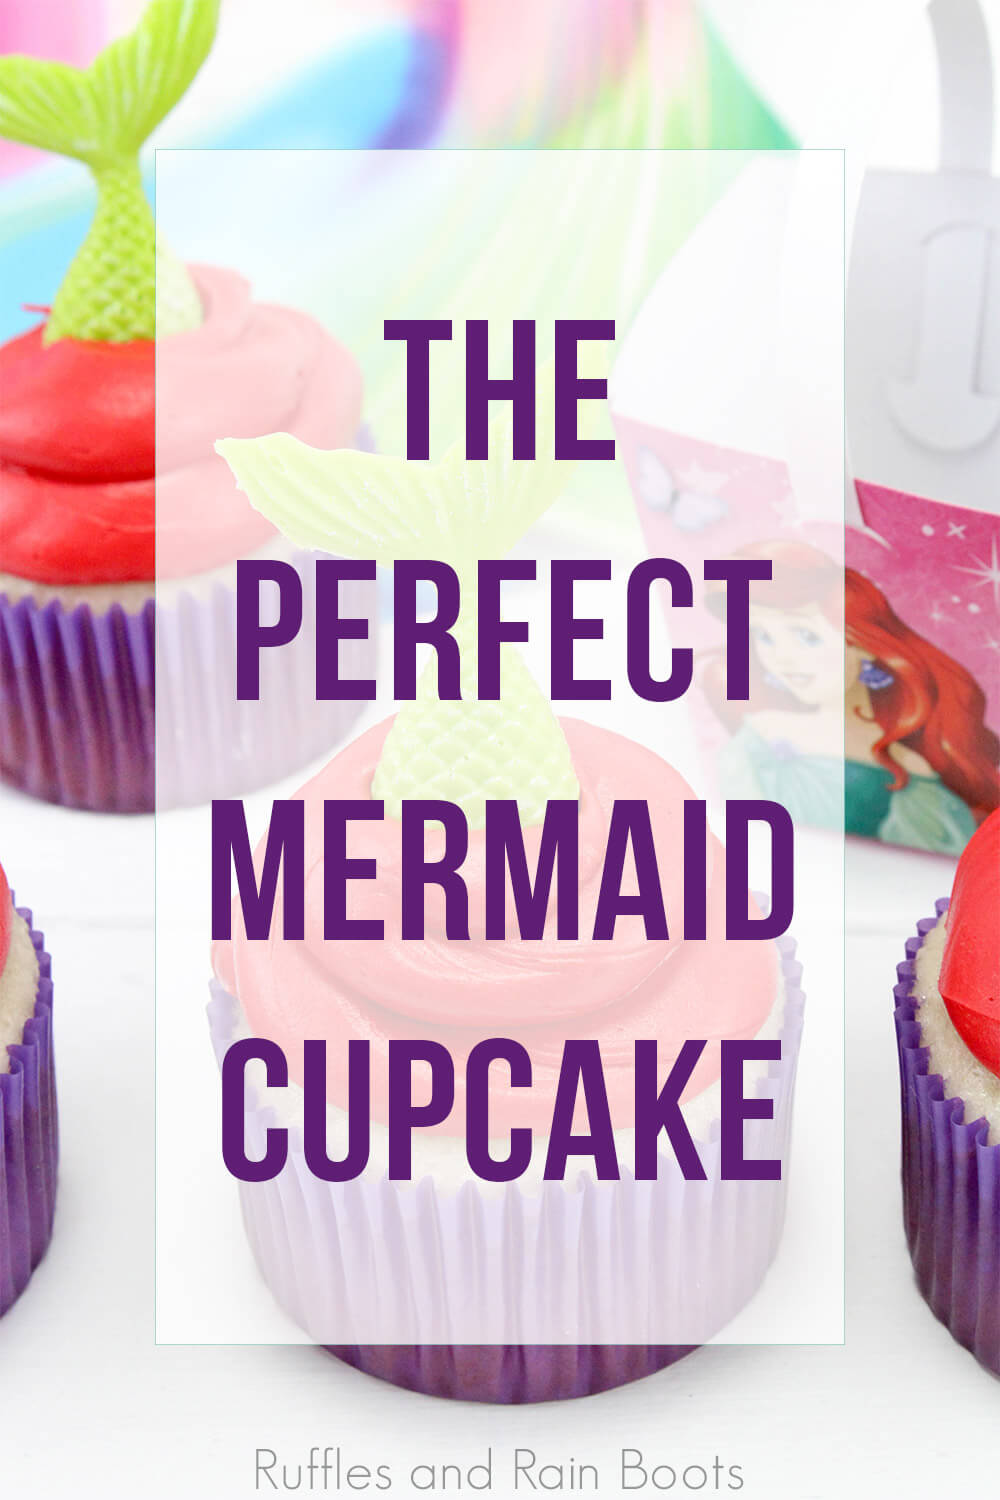 little mermaid party idea mermaid cupcakes with text overlay which reads the perfect mermaid cupcake